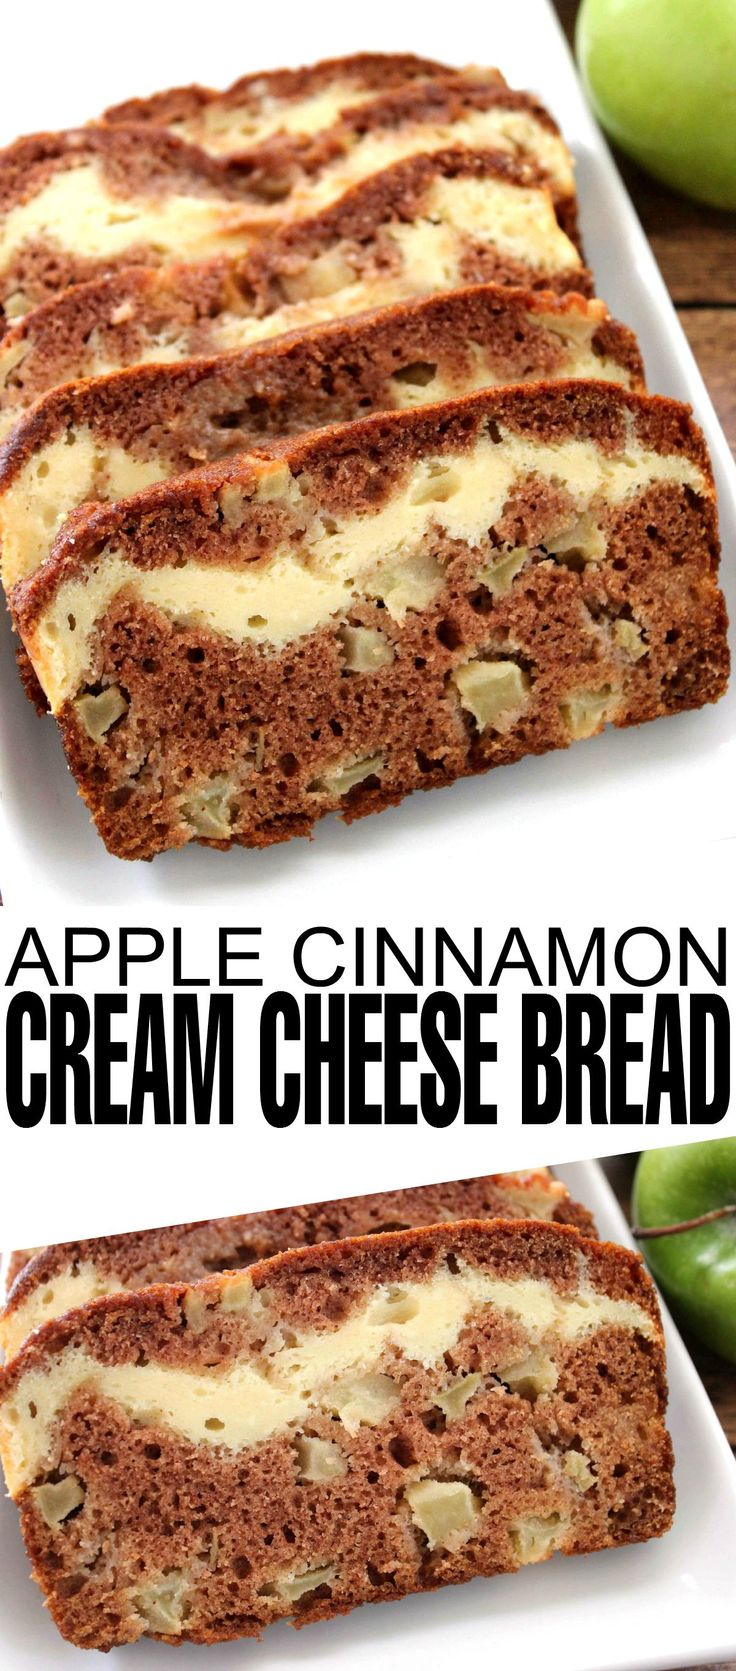 This Apple Cinnamon Cream Cheese Bread is perfect to enjoy with a coffee on a warm autumn day!